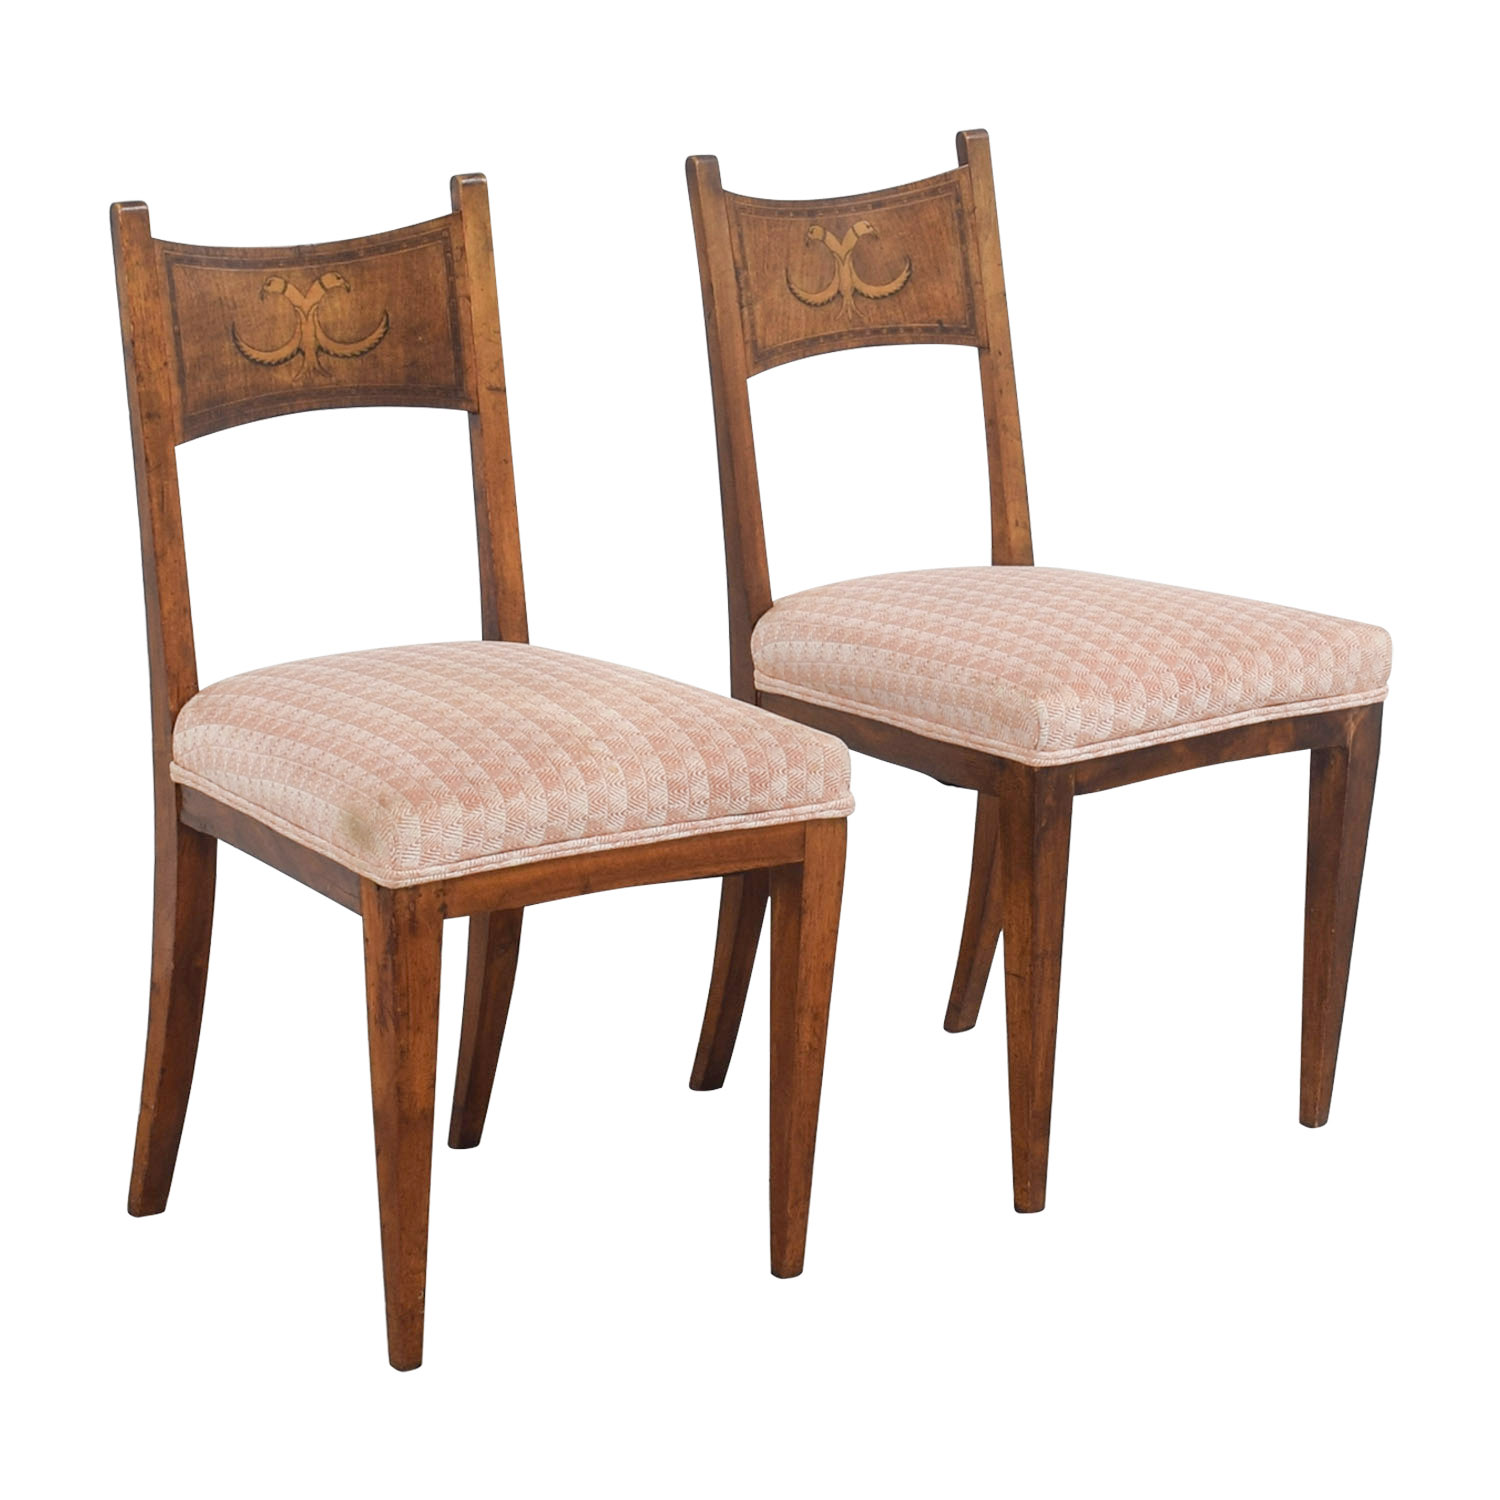 ... buy Antique Pink Upholstered Chairs with Bird Wood Inlay Chairs ... - 83% OFF - Antique Pink Upholstered Chairs With Bird Wood Inlay / Chairs